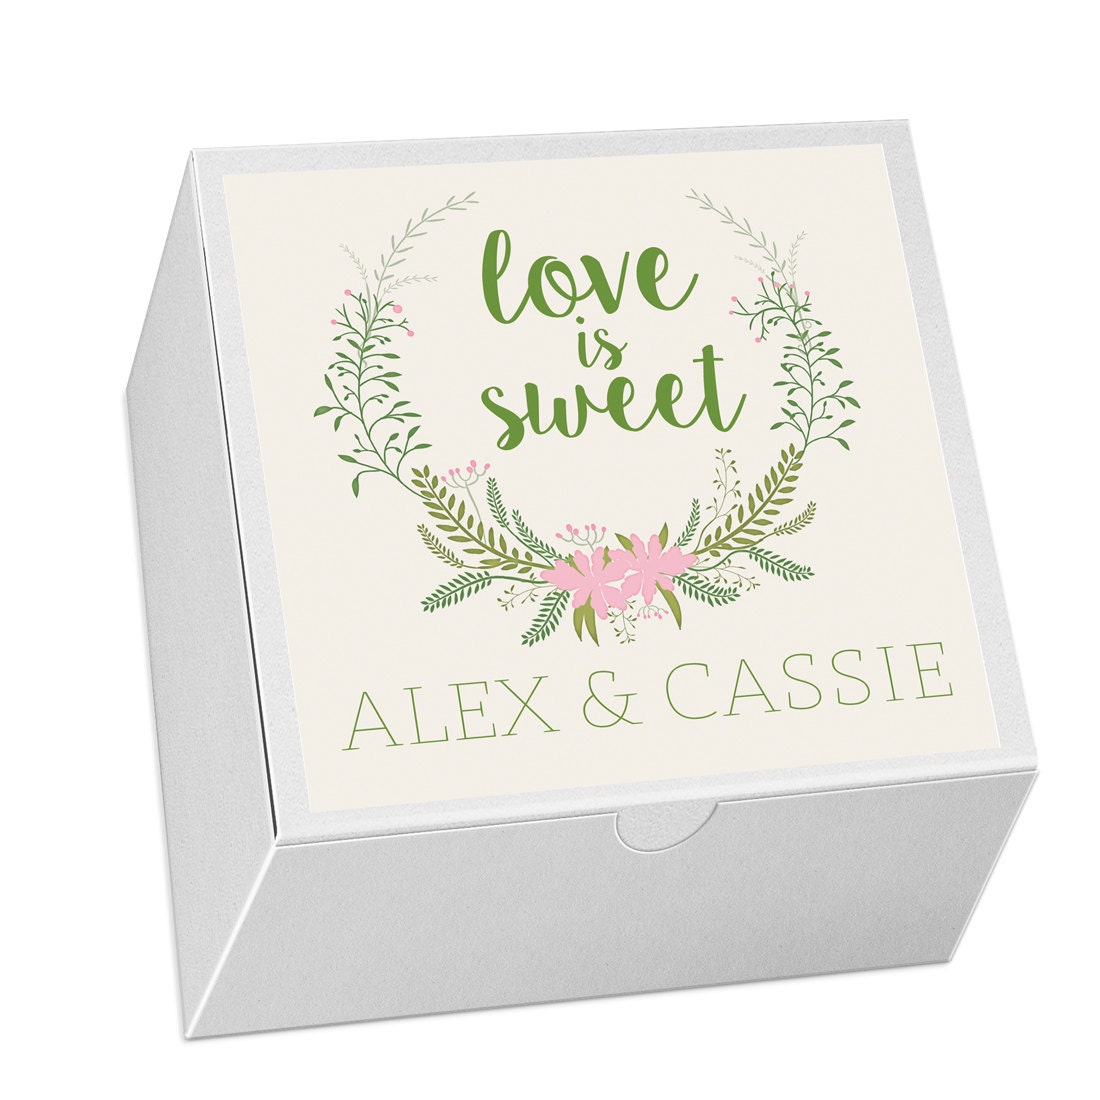 cake favor boxes wedding favor candy bag wedding cake. Black Bedroom Furniture Sets. Home Design Ideas